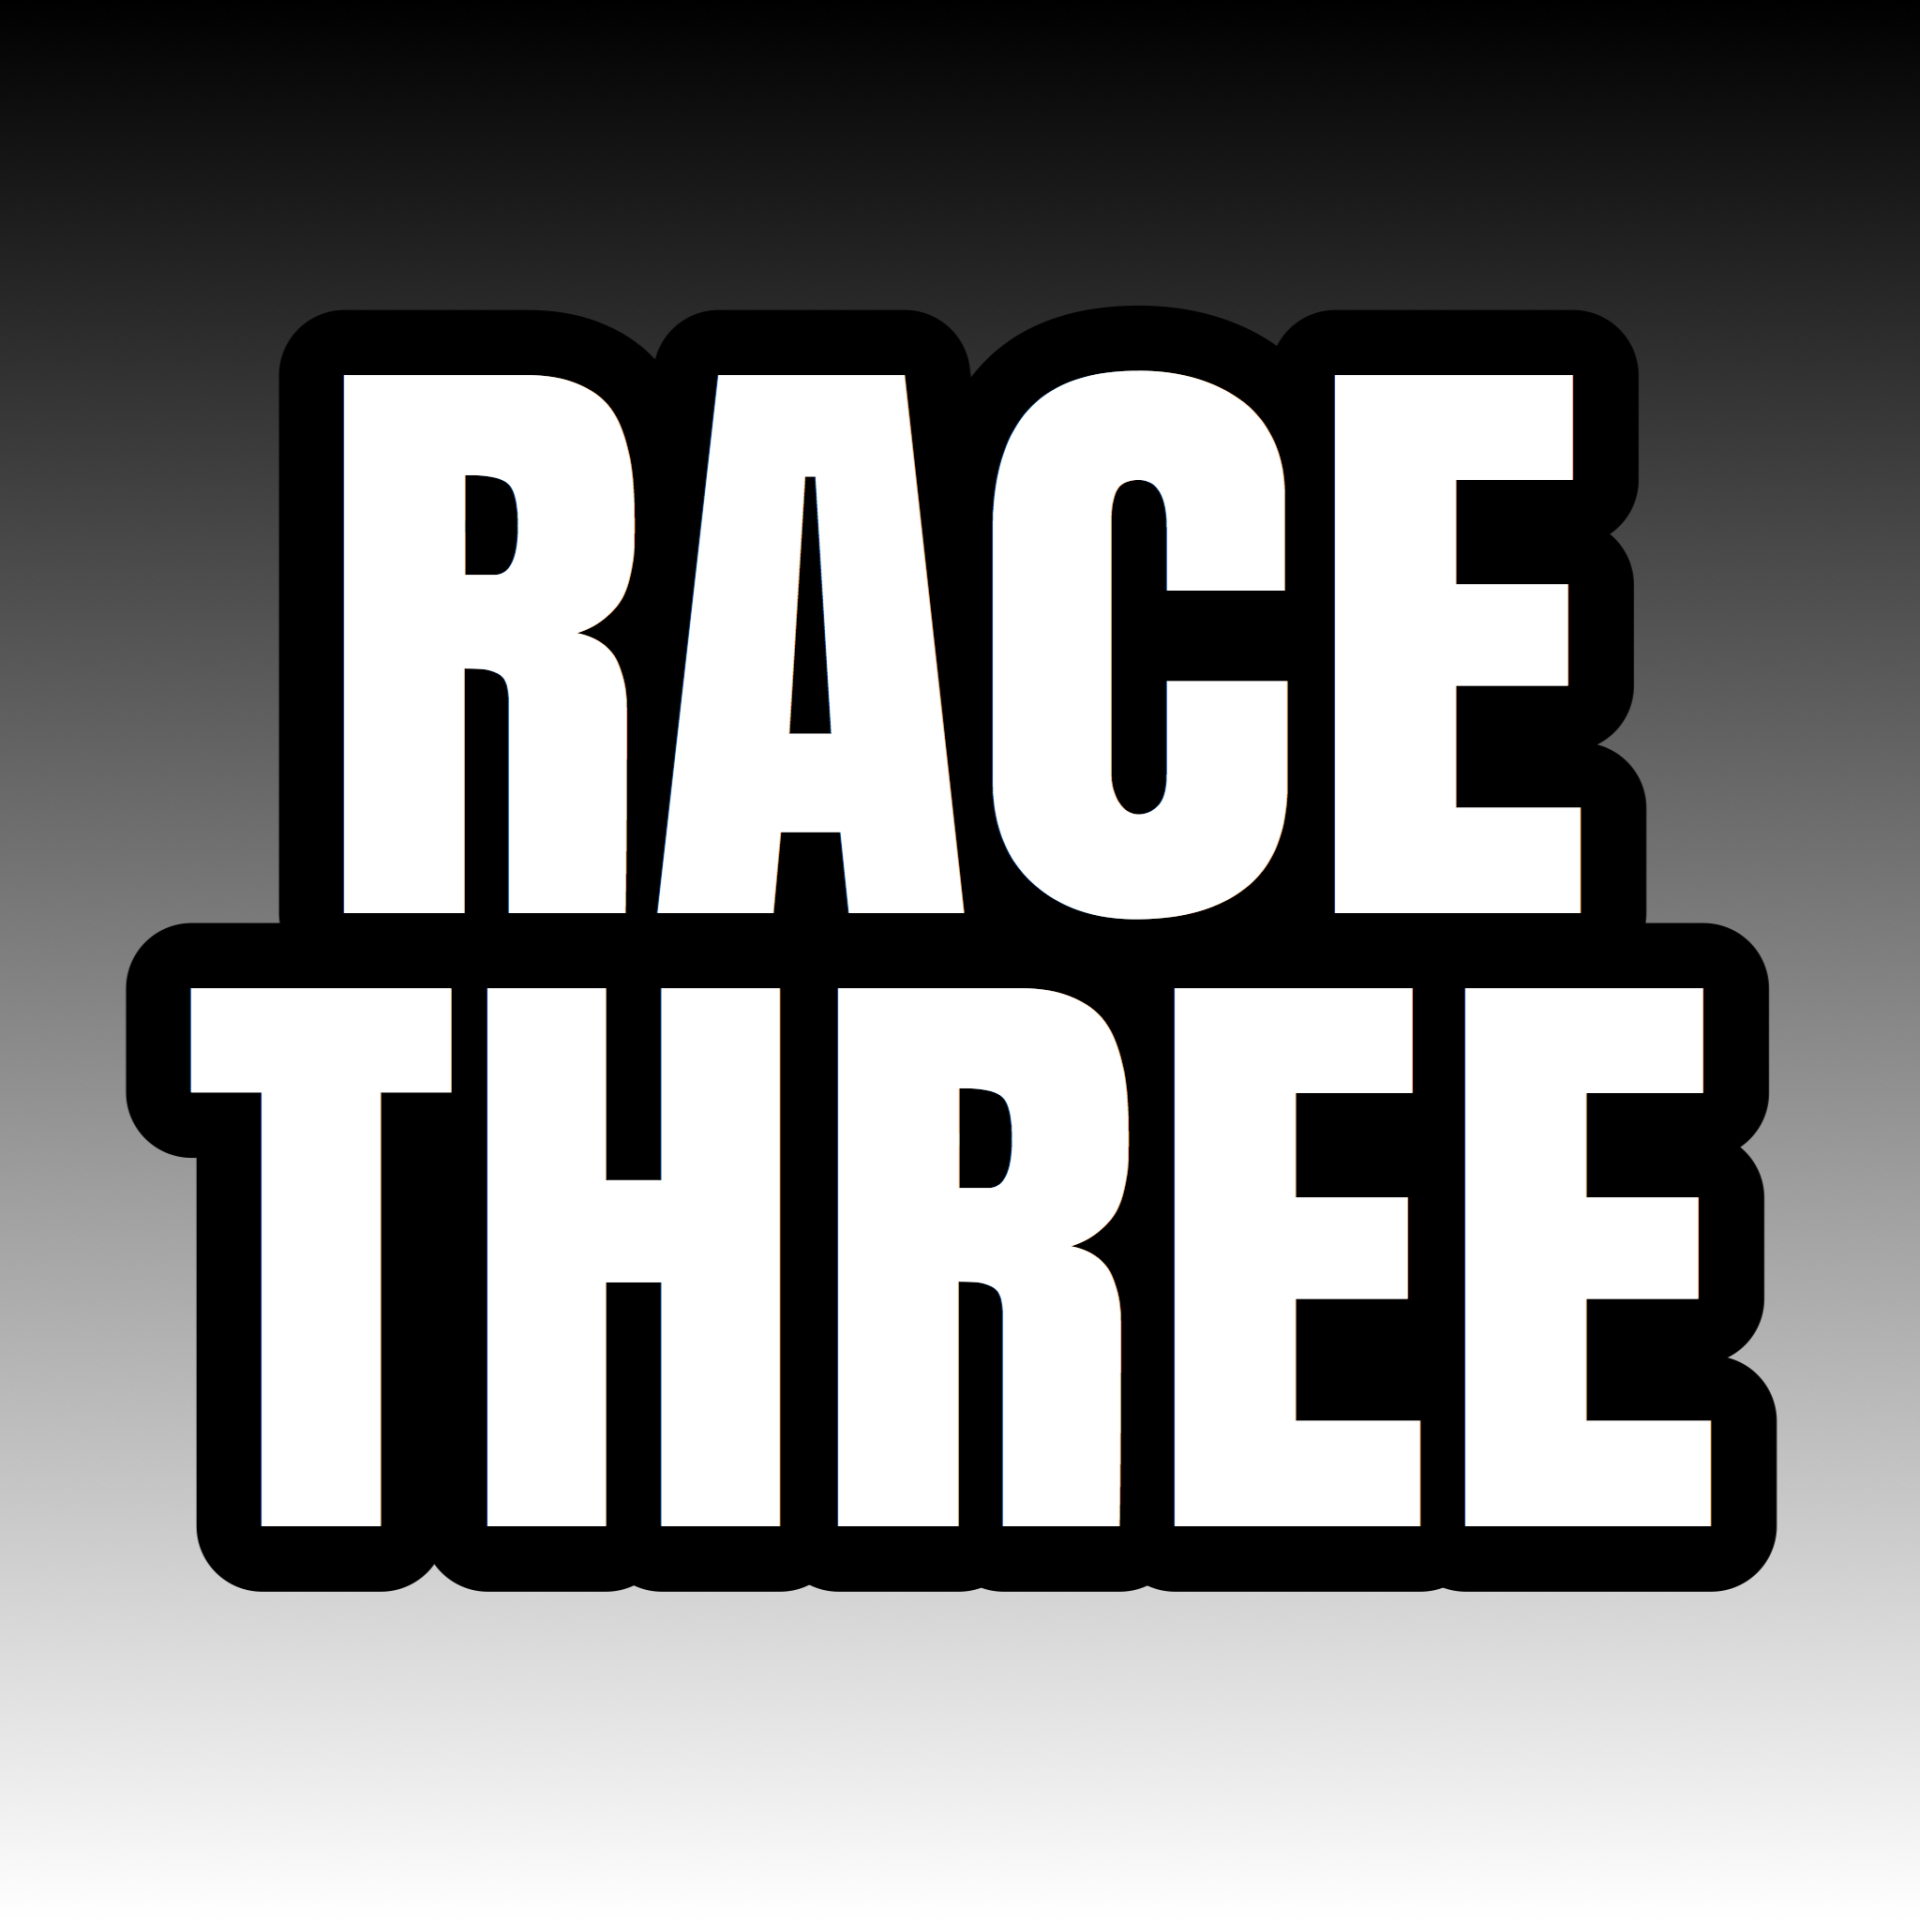 Race Three is on May 19th!